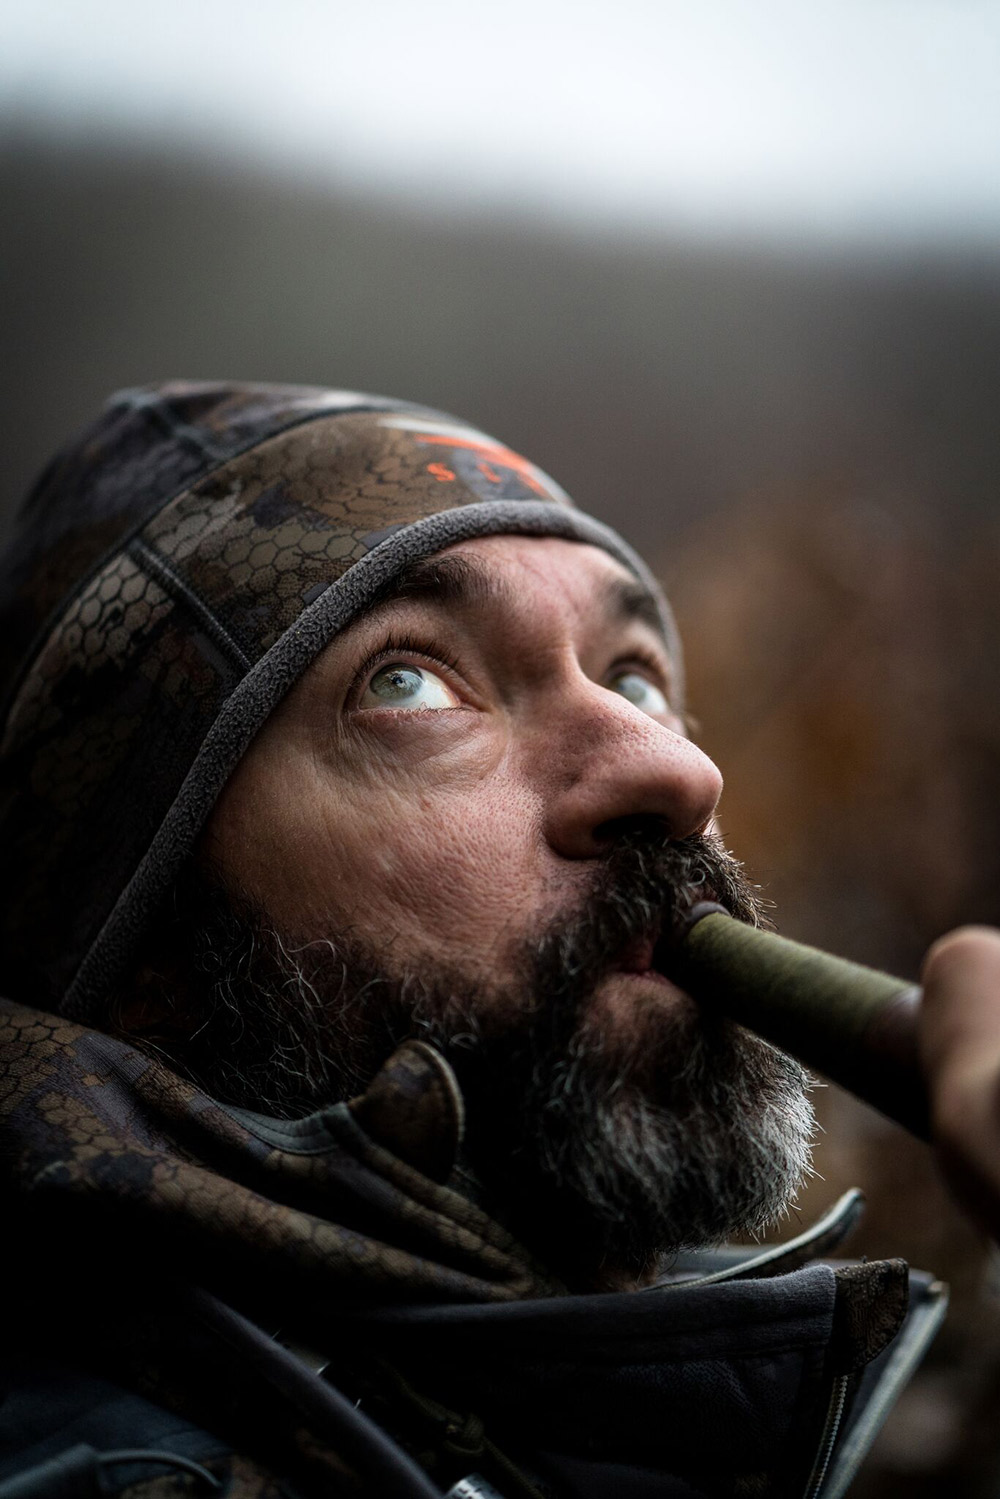 John Stephens has eyes to the sky as he blows a duck call.